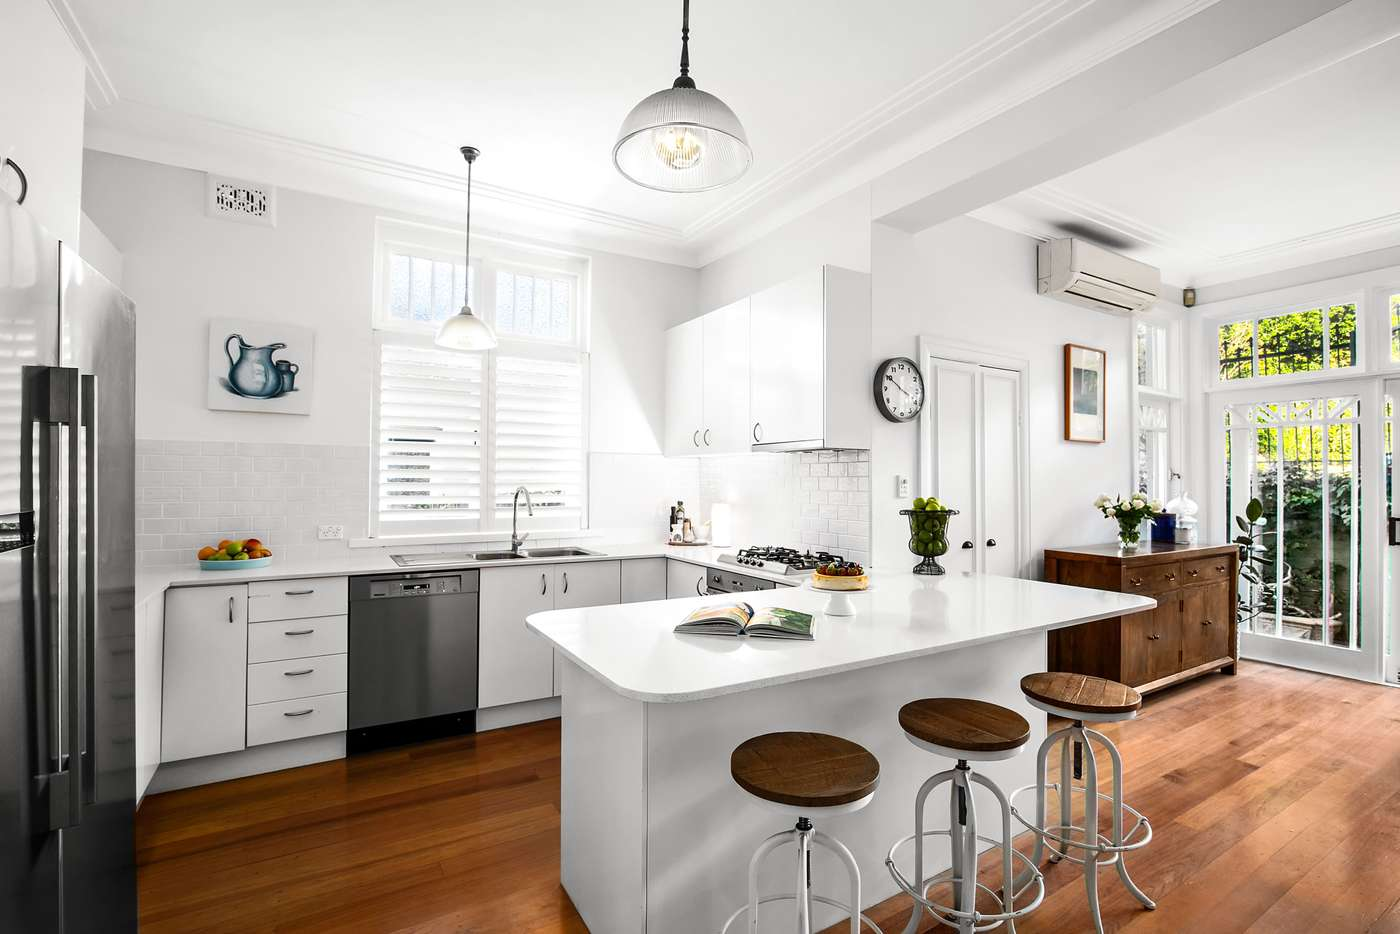 Sixth view of Homely house listing, 49 Reynolds Street, Cremorne NSW 2090